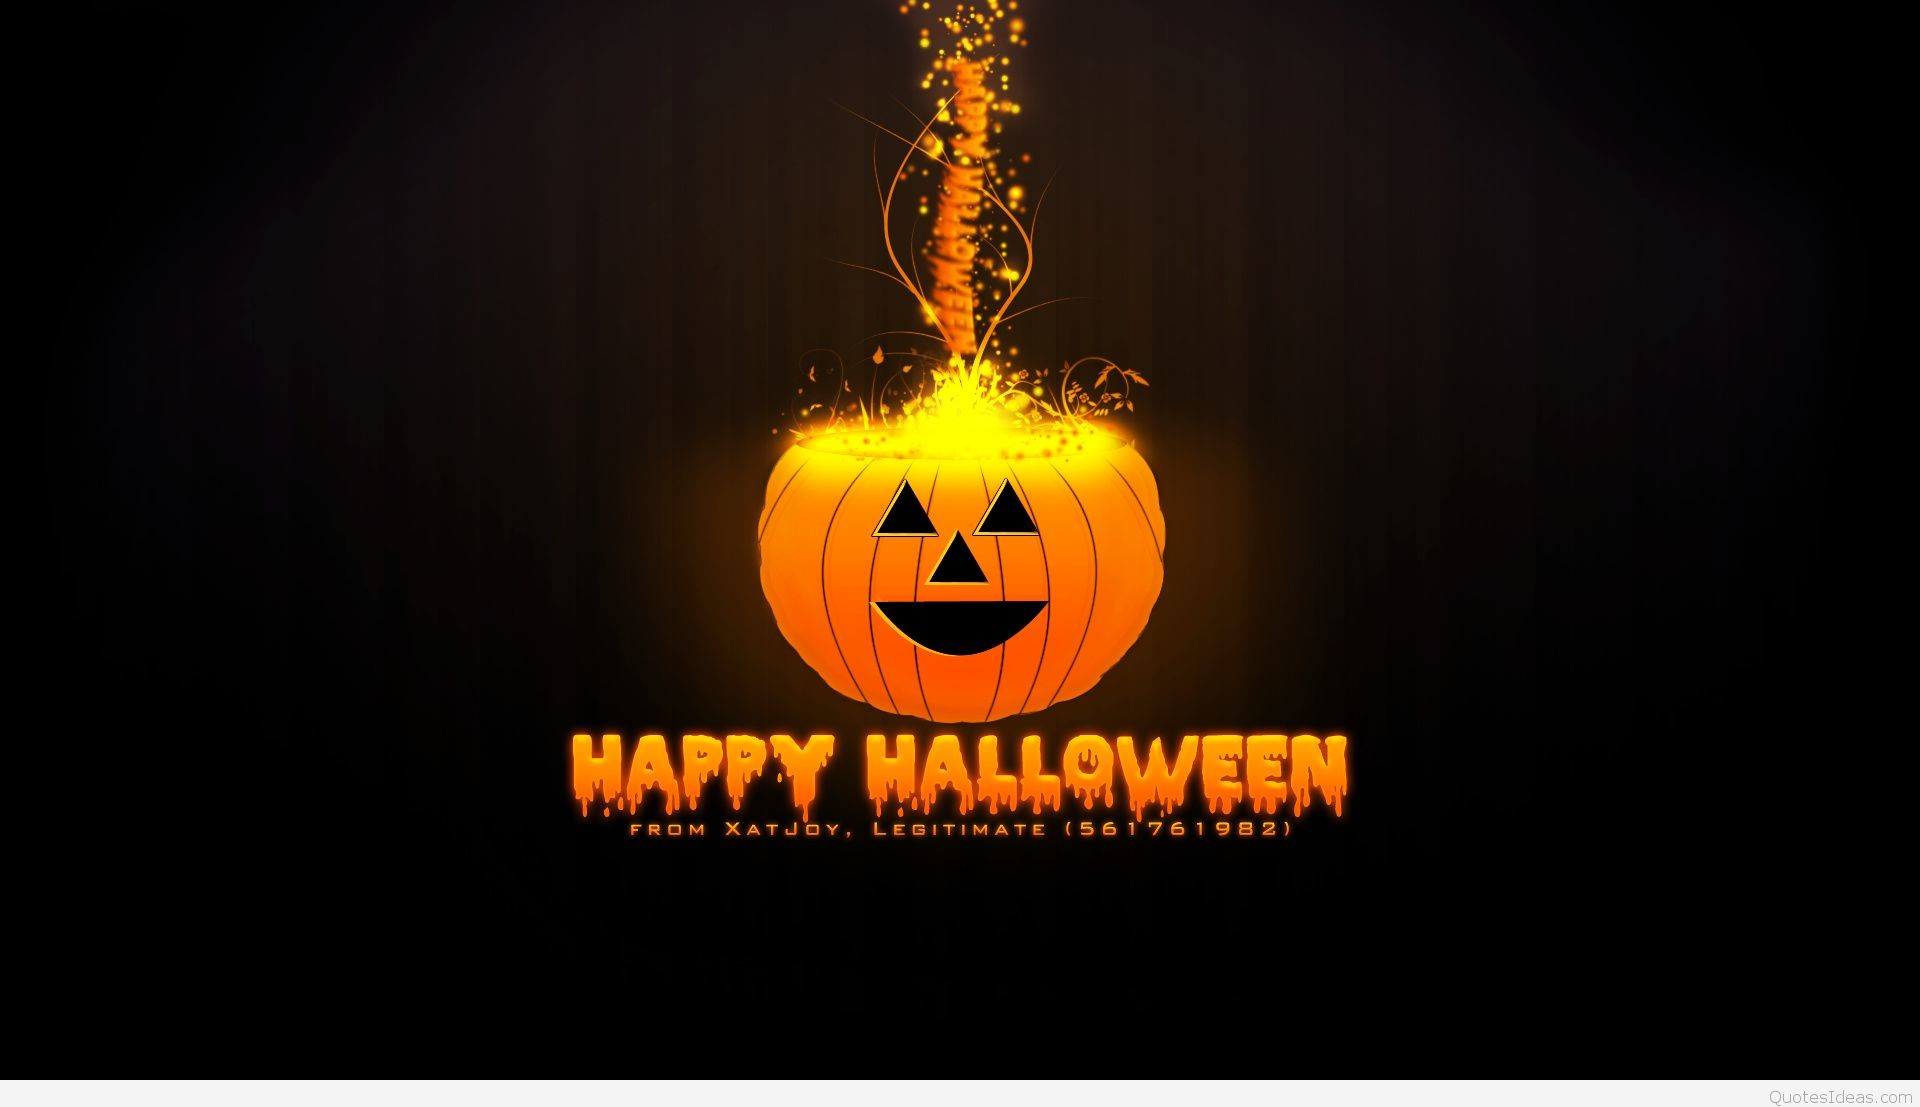 Simple Wallpaper High Resolution Halloween - 306177  Image_66866.jpg